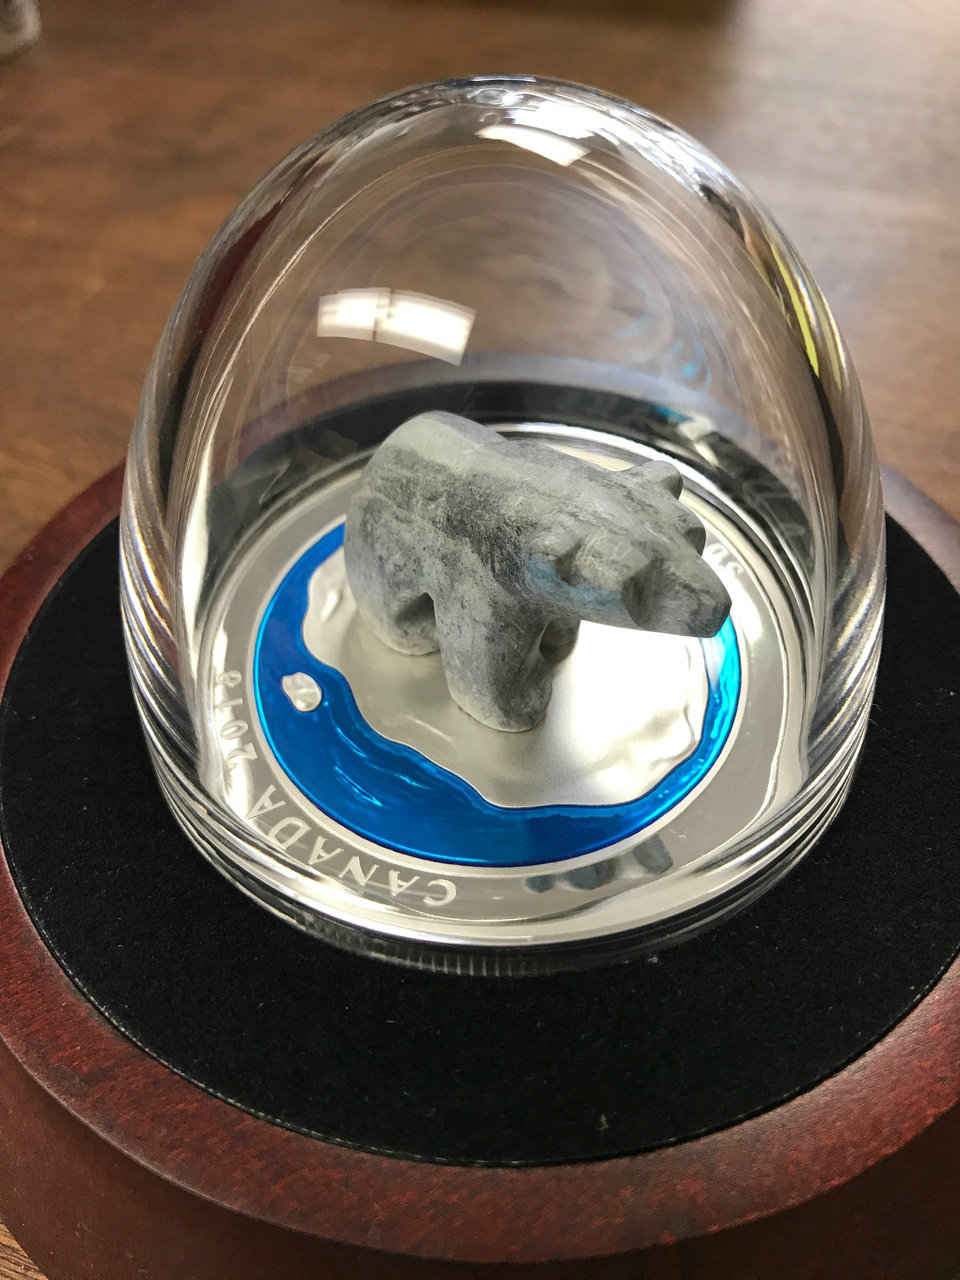 2014 Canada $50 Polar Bear Fine Silver Coin By Royal Canadian Mint In Capsule Coins & Paper Money Other Canadian Coins